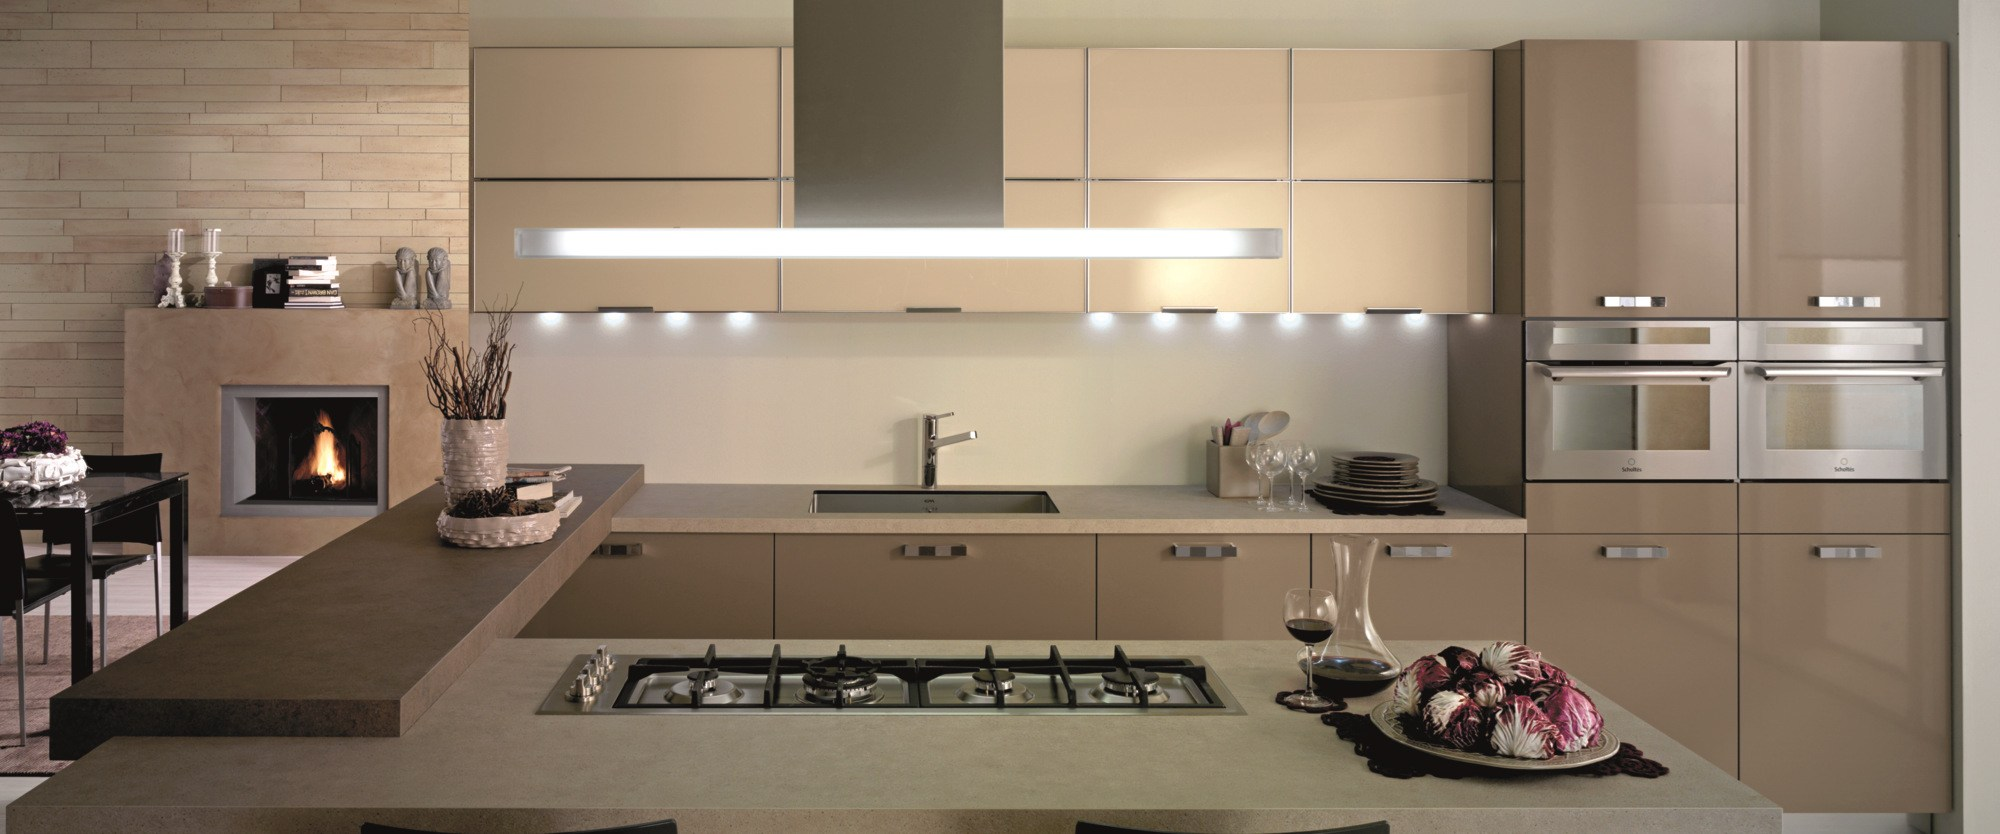 Fitted kitchen chia by del tongo - Del tongo cucina ...